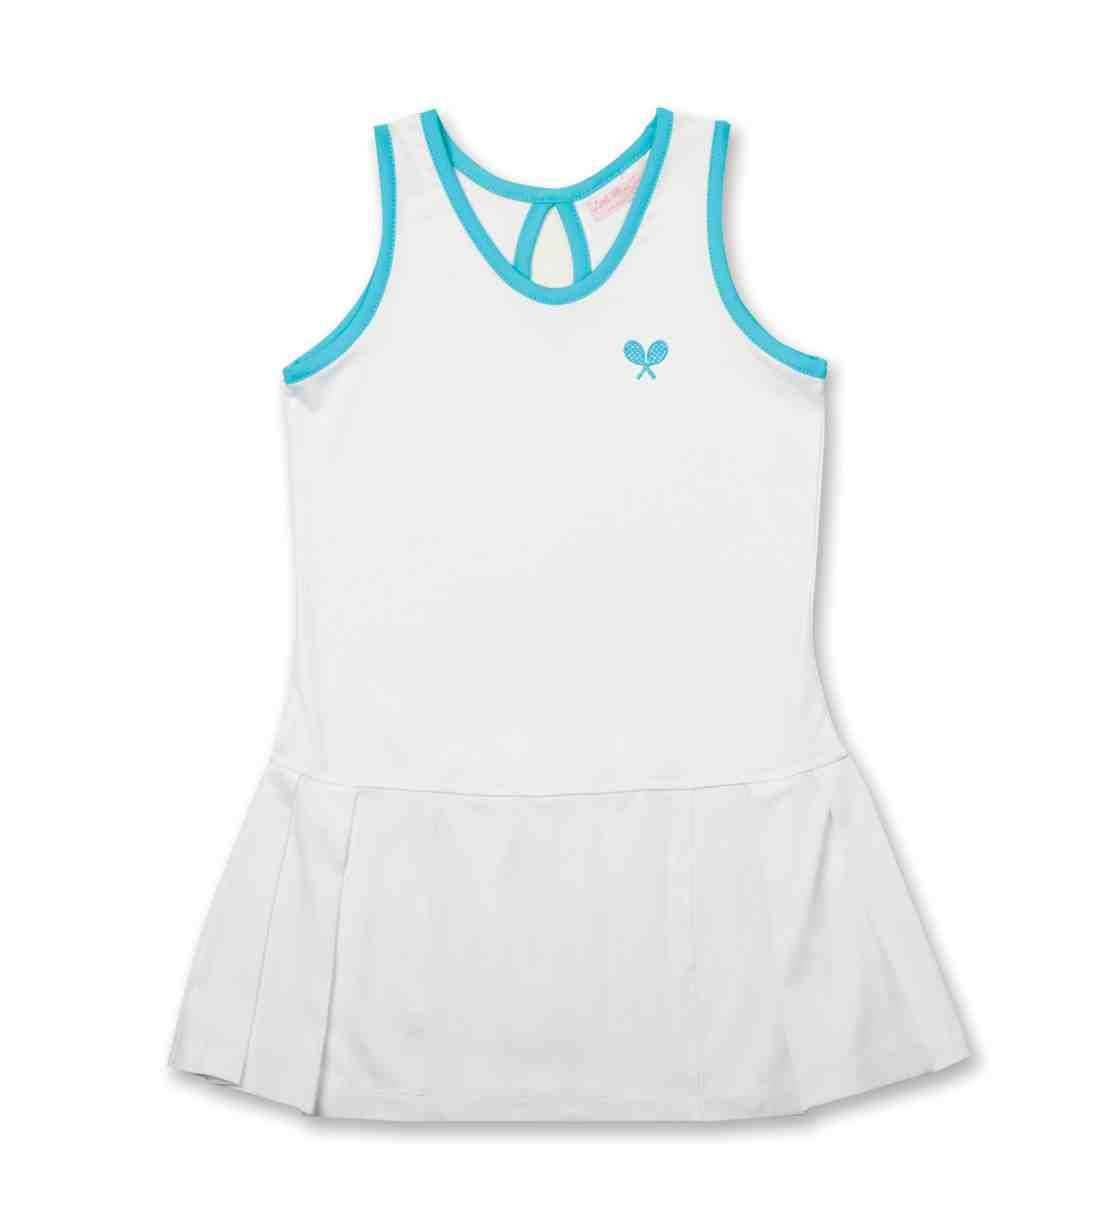 Toddler Tennis Clothes Tennis Clothes Girl Tennis Outfit Sport Outfits